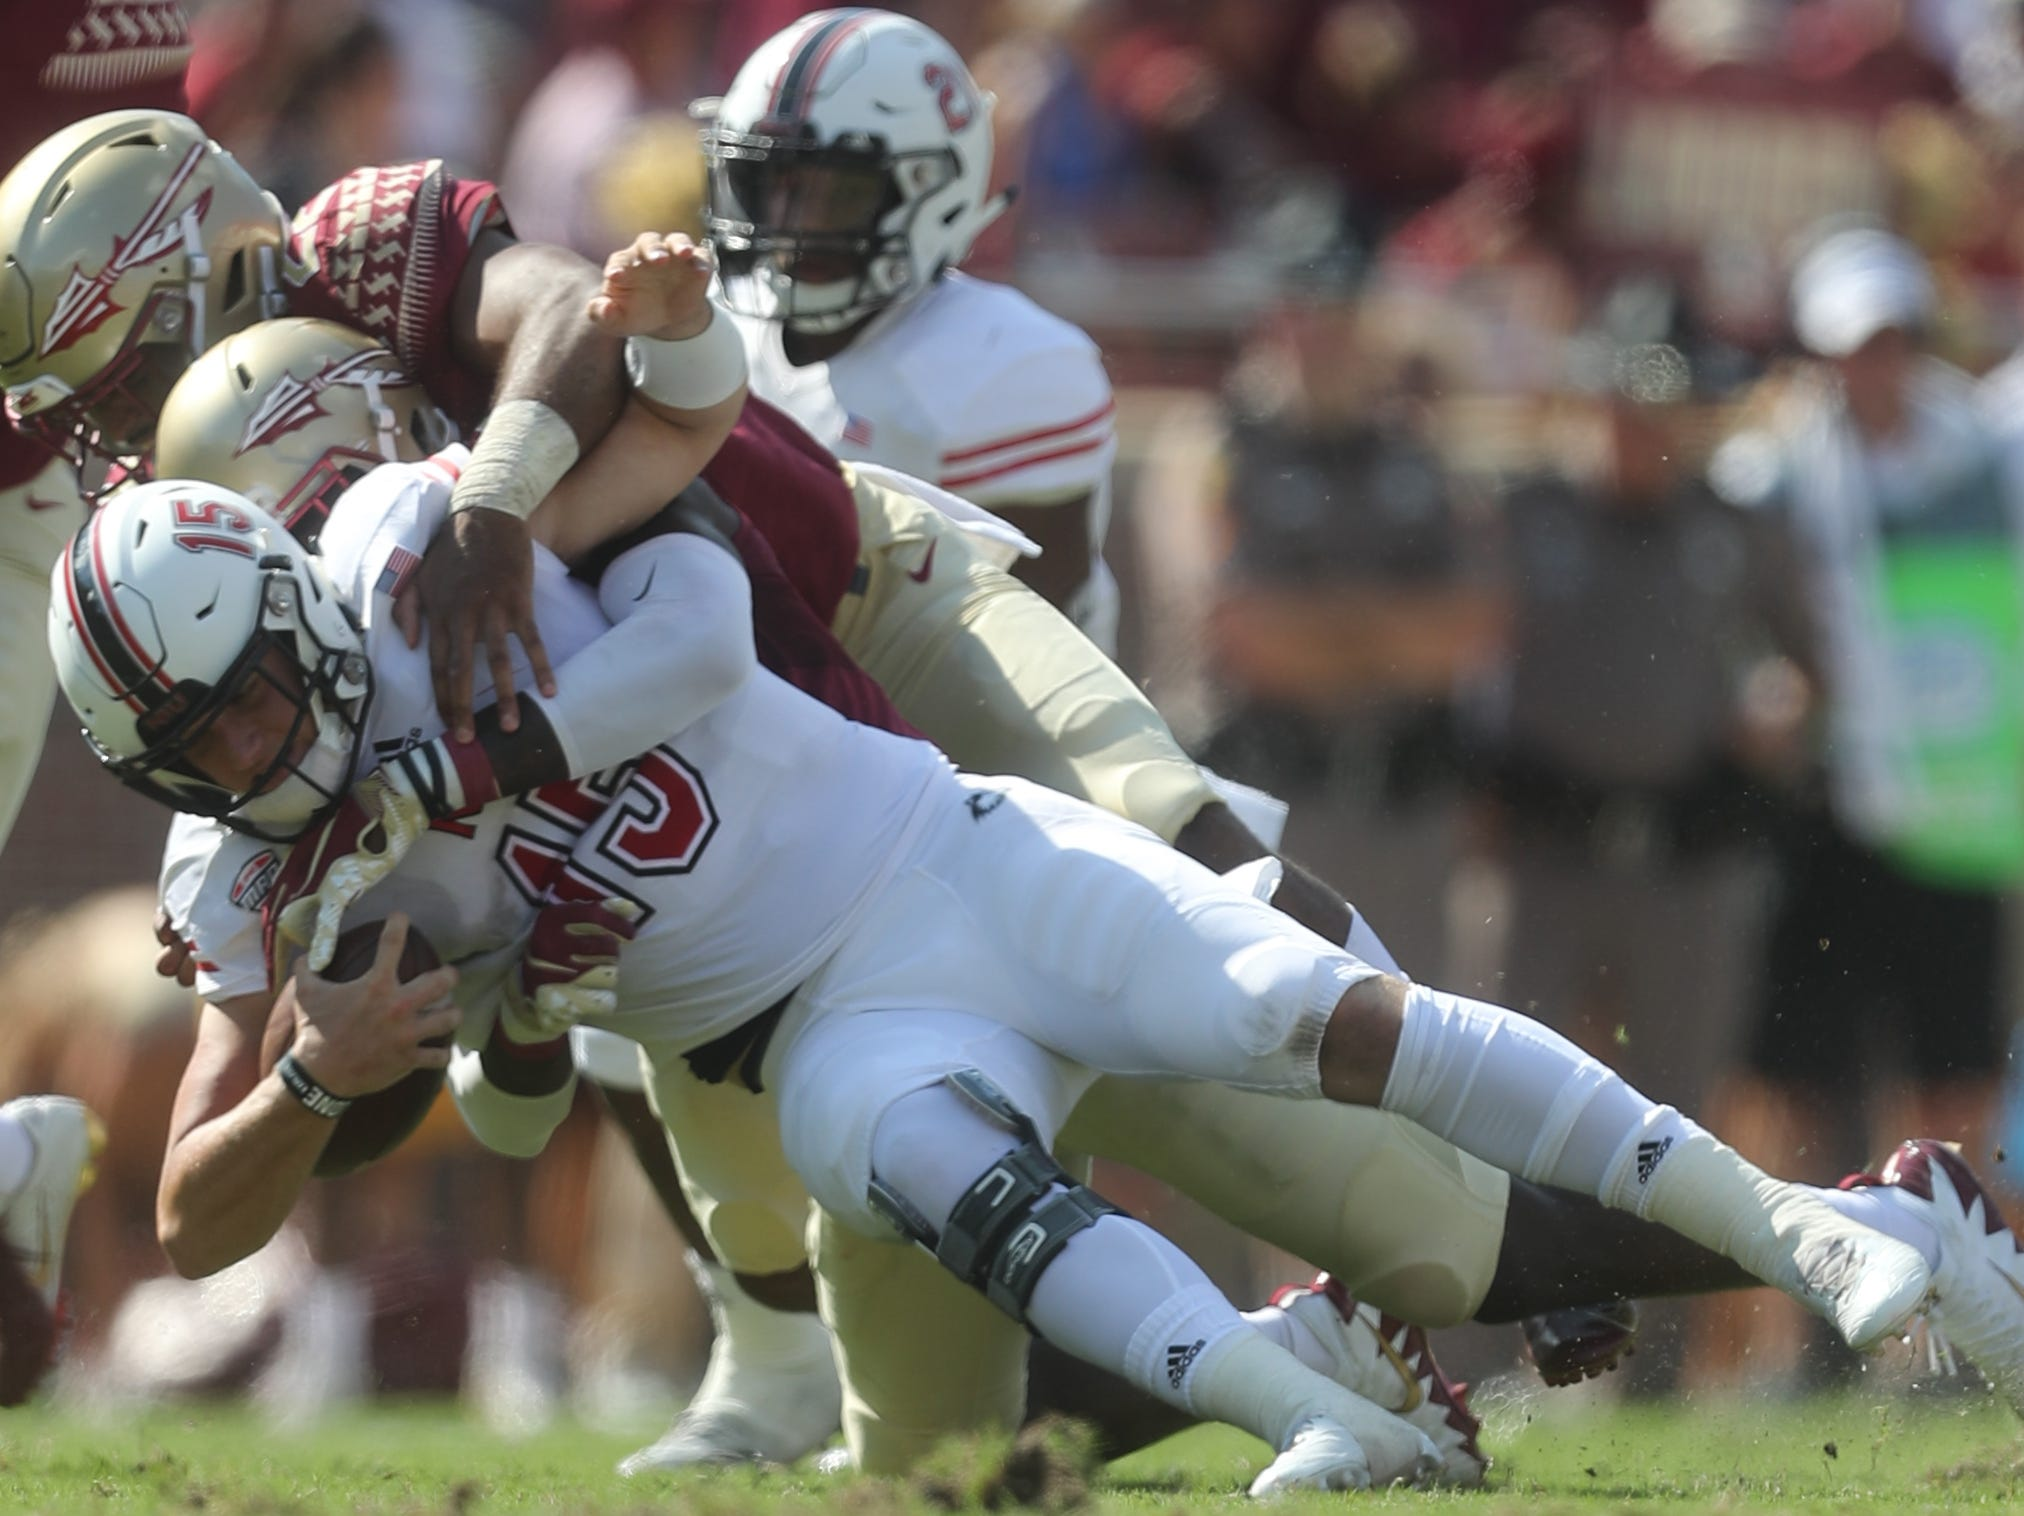 Northern Illinois Huskies quarterback Marcus Childers (15) is brought down by a pair of Seminoles during a game between the Florida State University Seminoles and the Northern Illinois University Huskies at Doak S. Campbell Stadium in Tallahassee, Fla. Saturday, September 22, 2018.